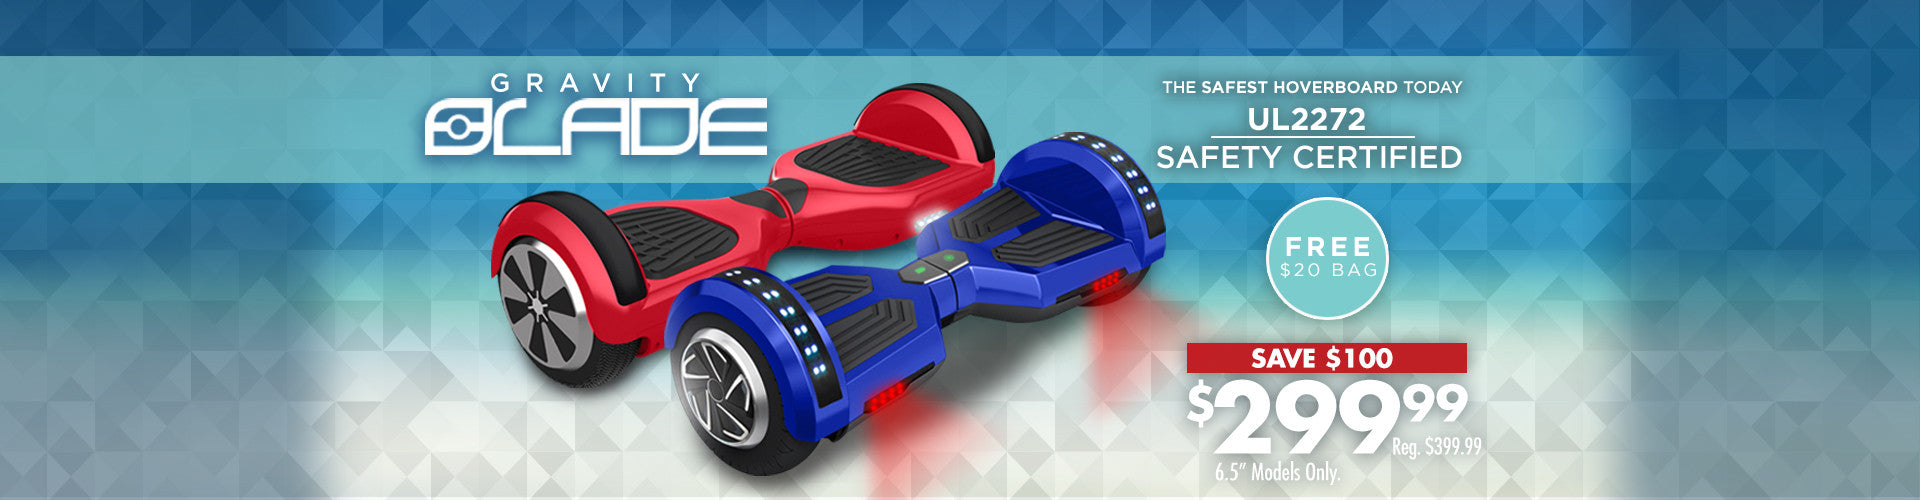 Gravity Blade Hoverboard